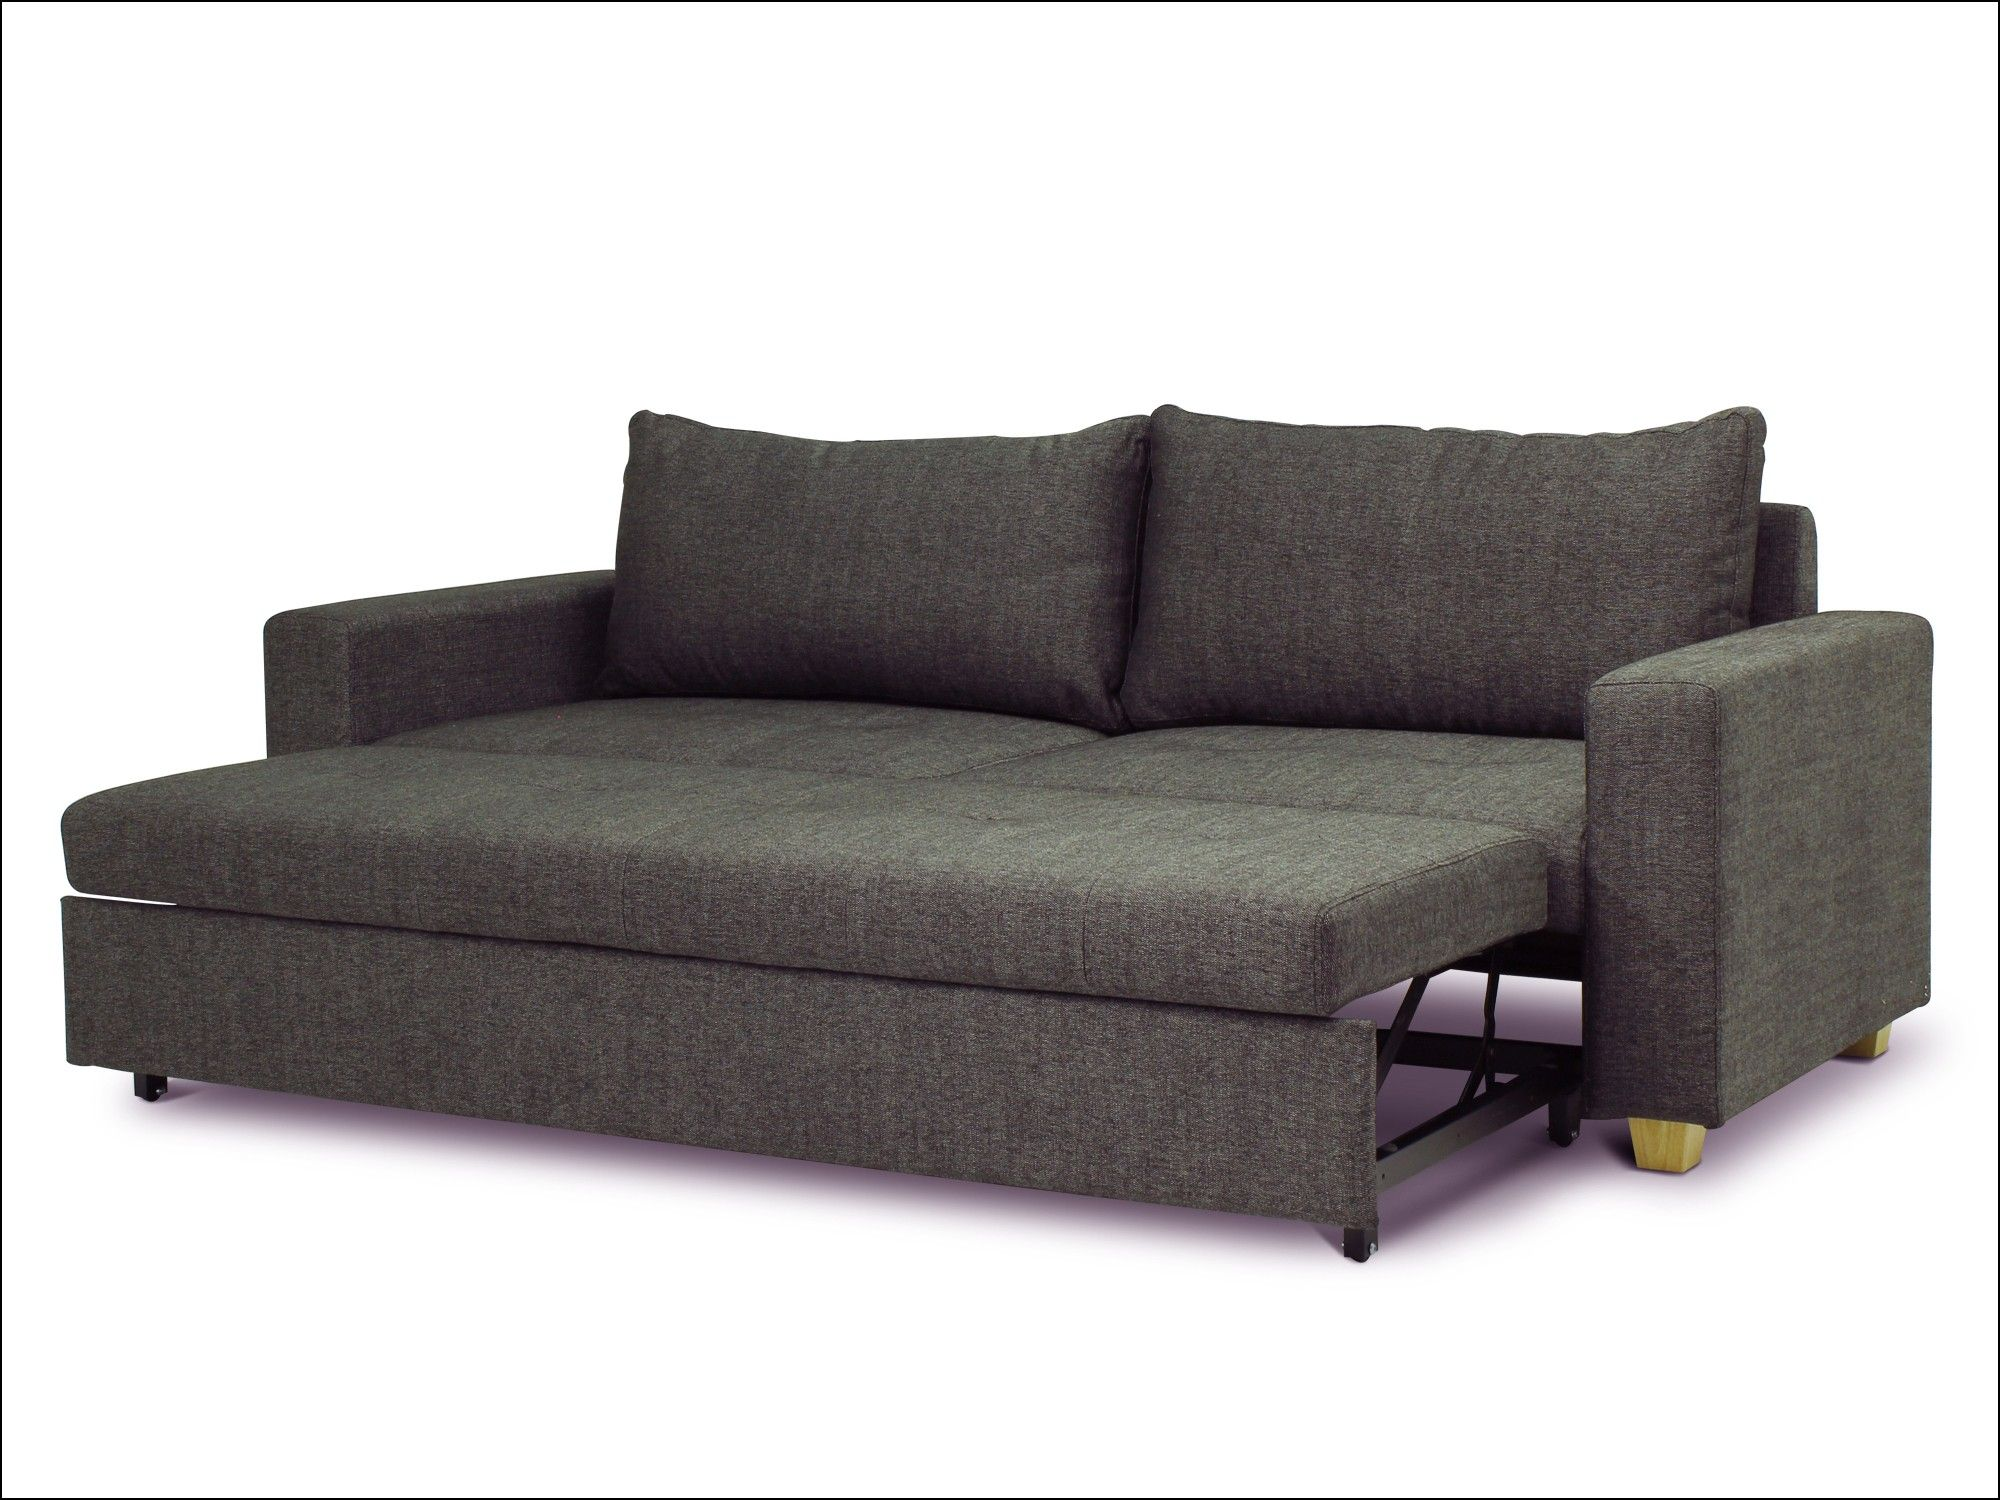 Good Quality Sofa Bed Sale 3 Seater Sofa Bed Sale Couch Sofa Gallery Pinterest Sofa